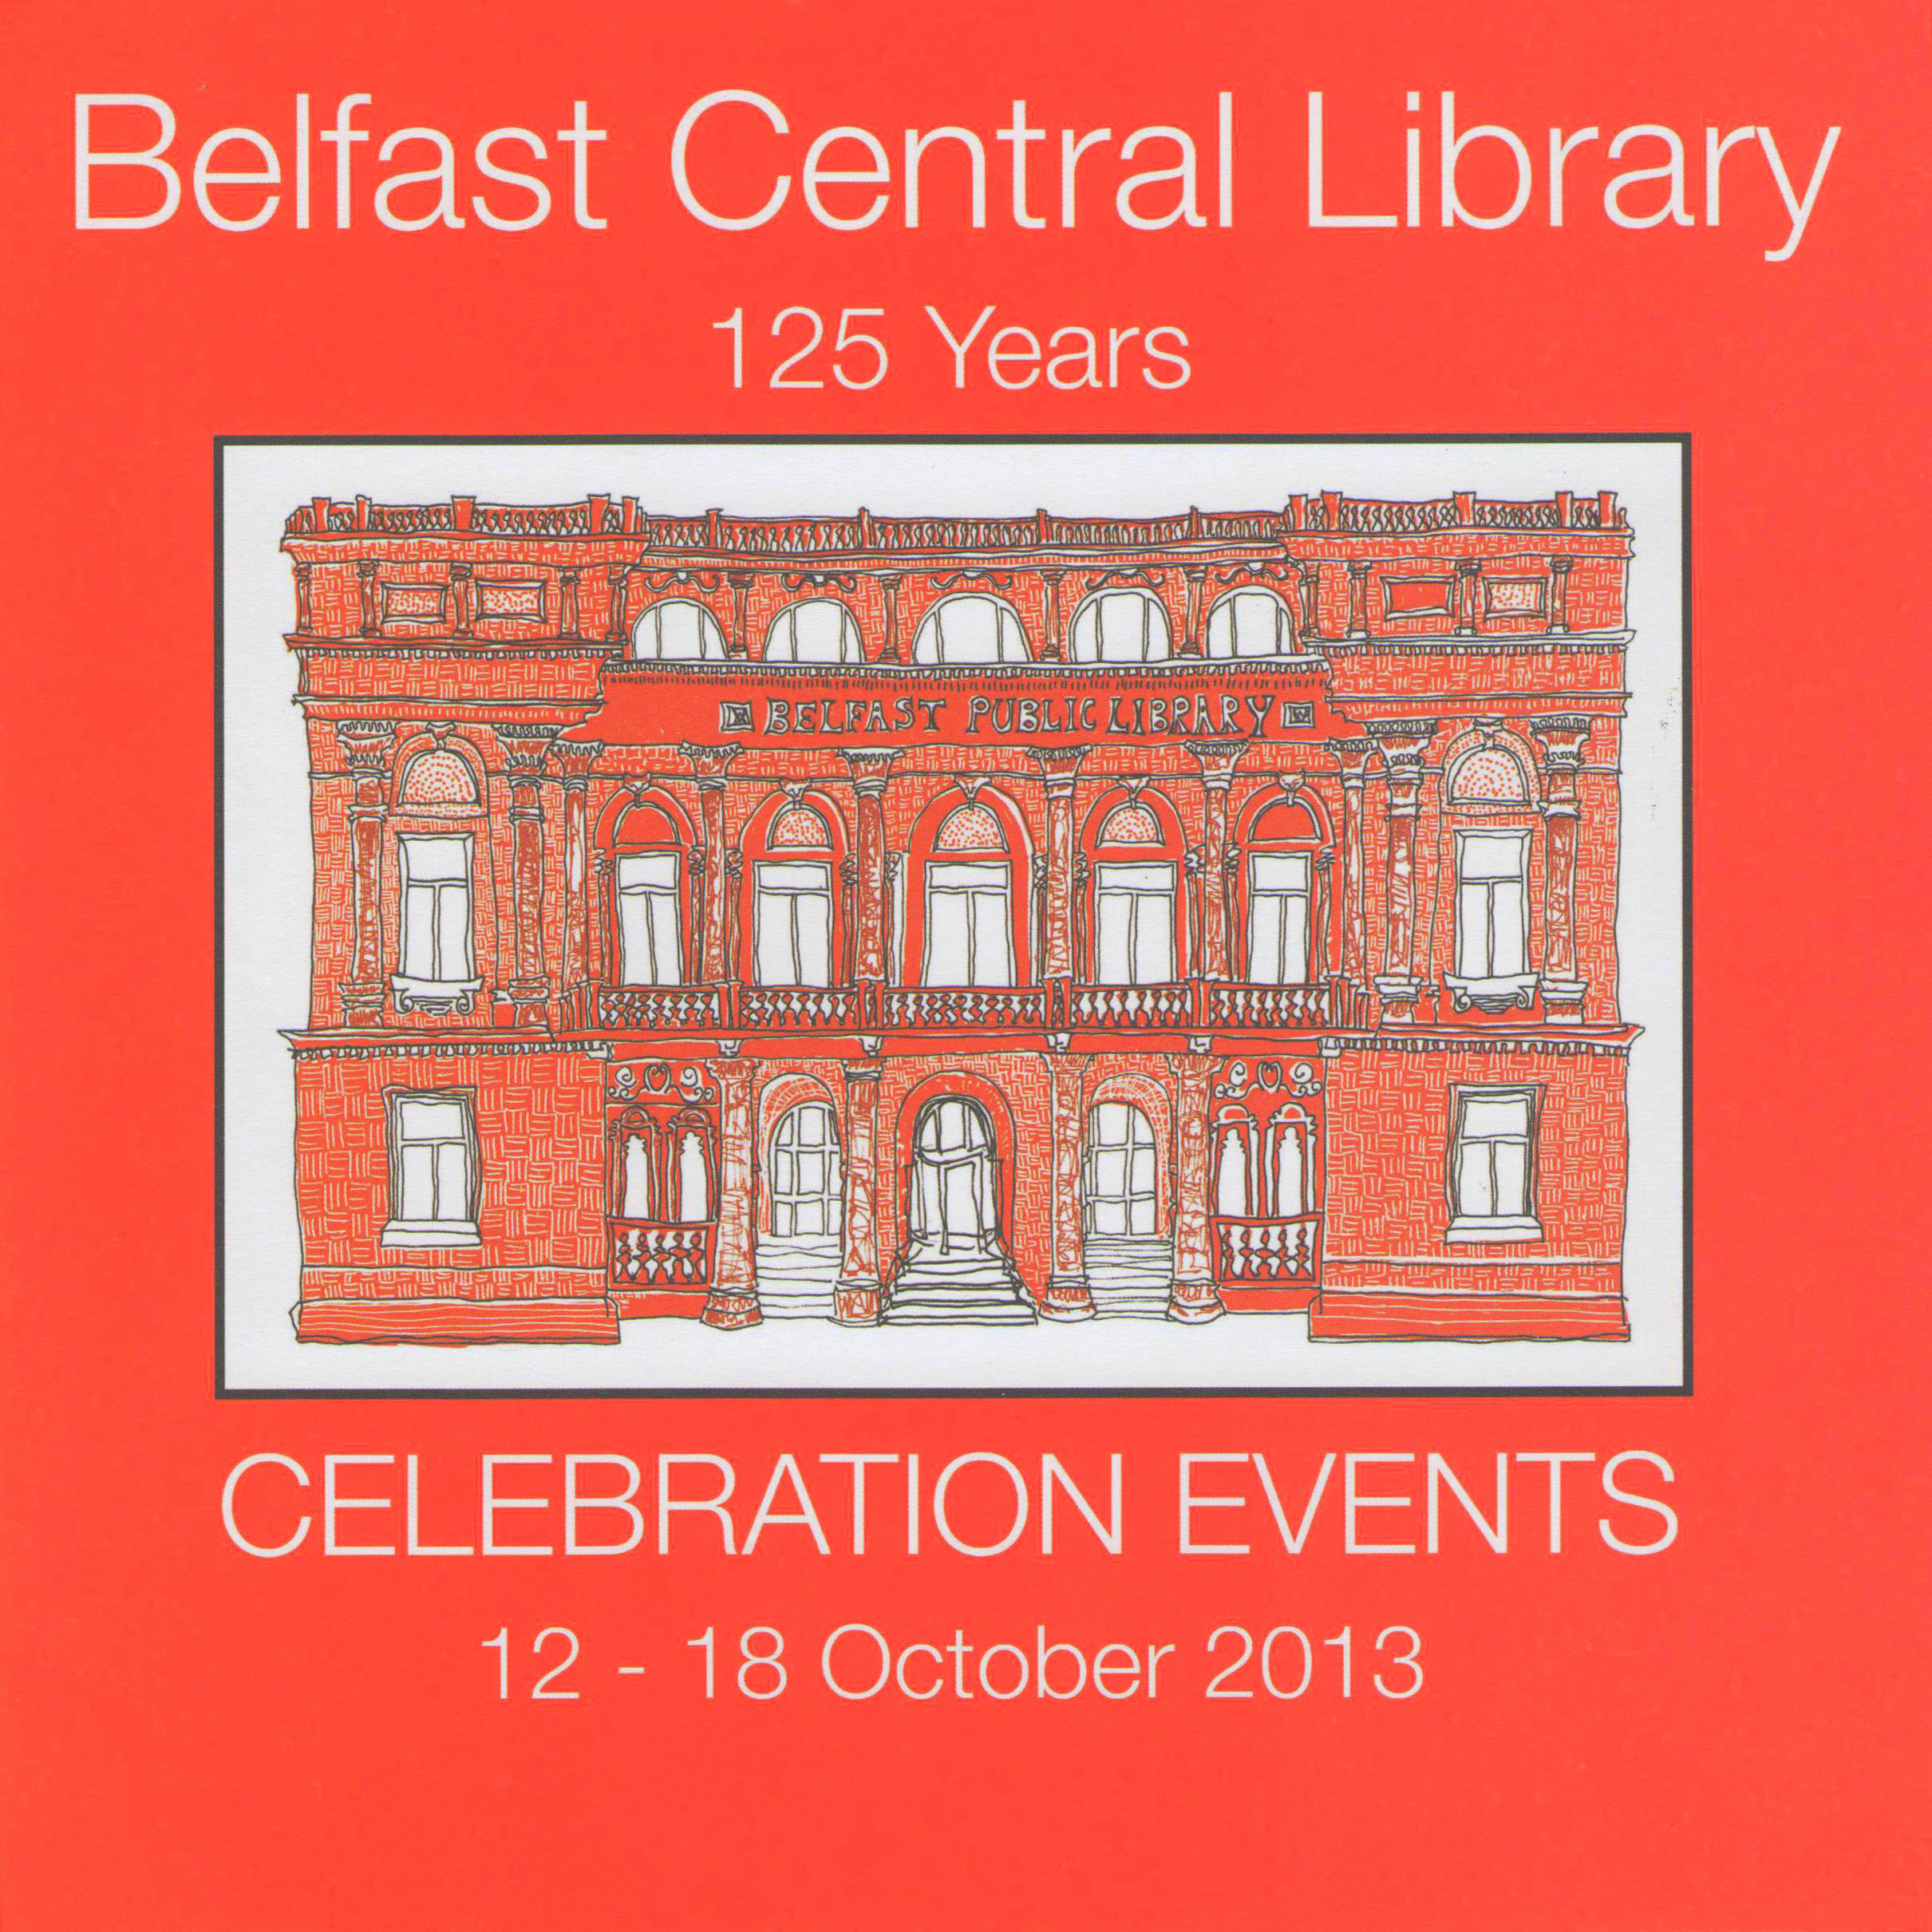 Belfast Central Library - 125 Years Celebration Events